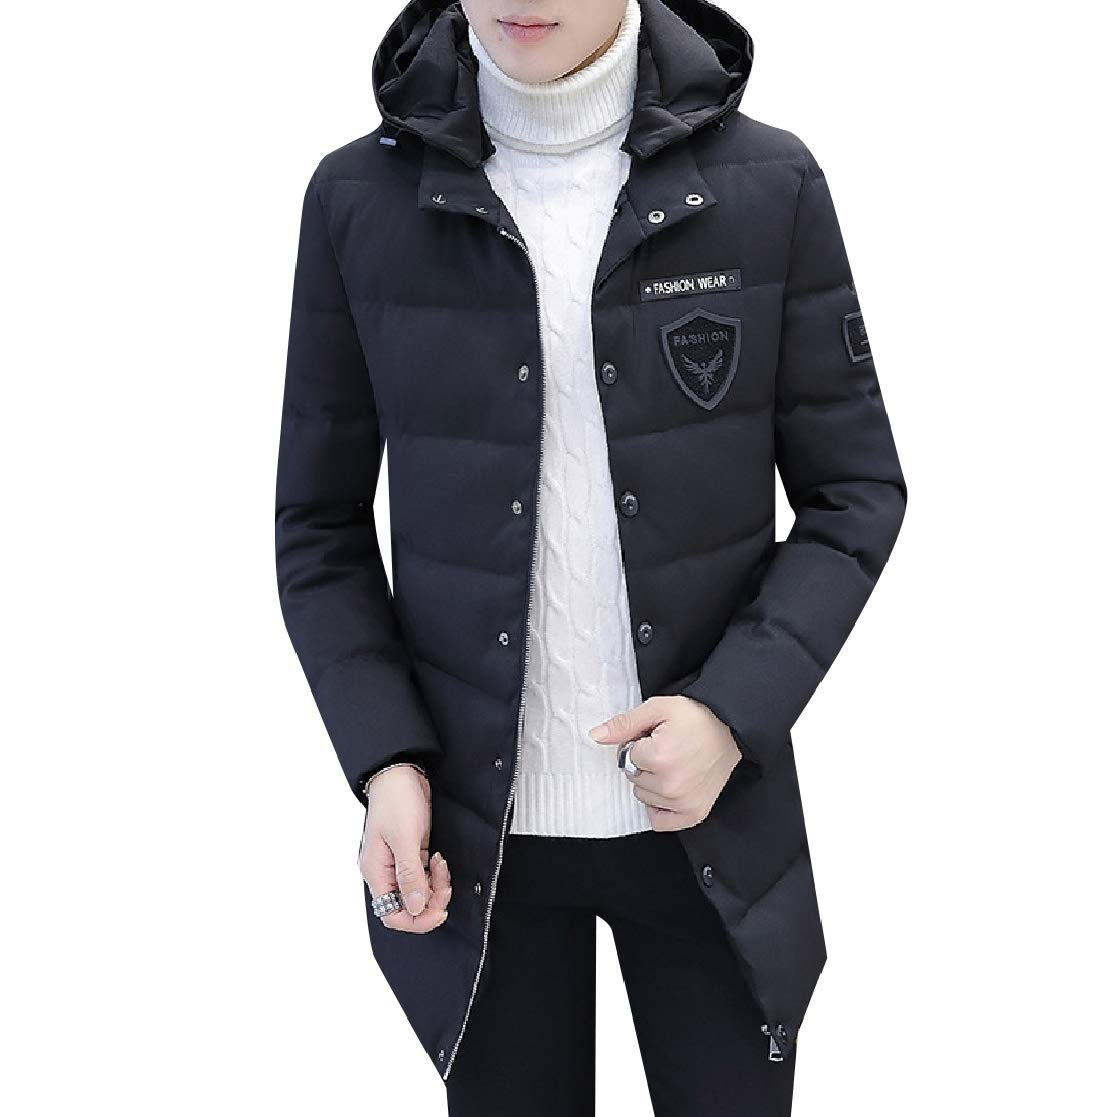 YUNY Mens Solid-Colored Leisure Warm Thick Oversize Down Jacket 11 L